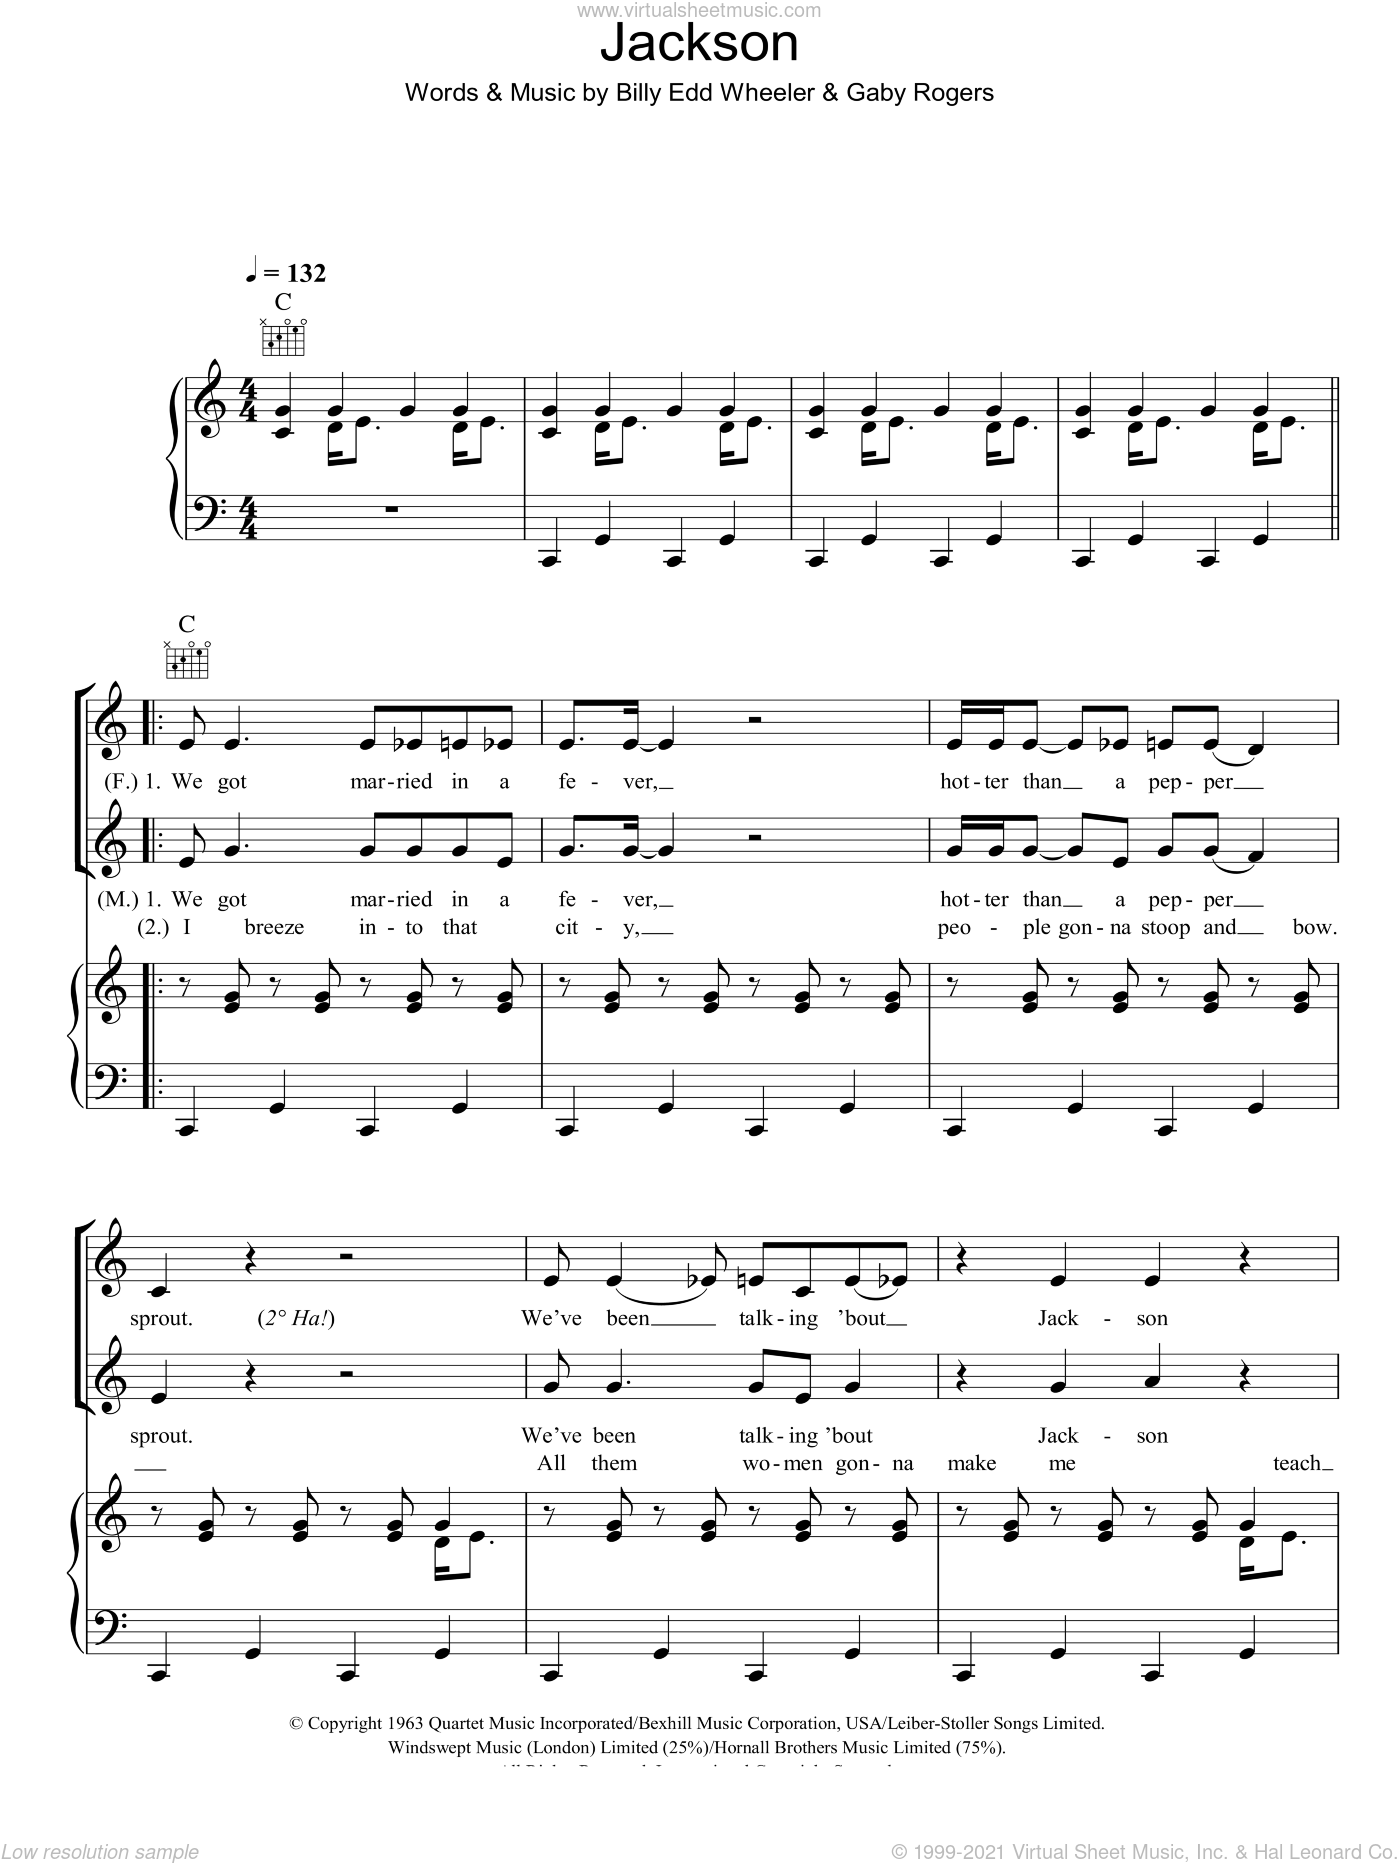 Jackson sheet music for voice, piano or guitar by Gaby Rogers